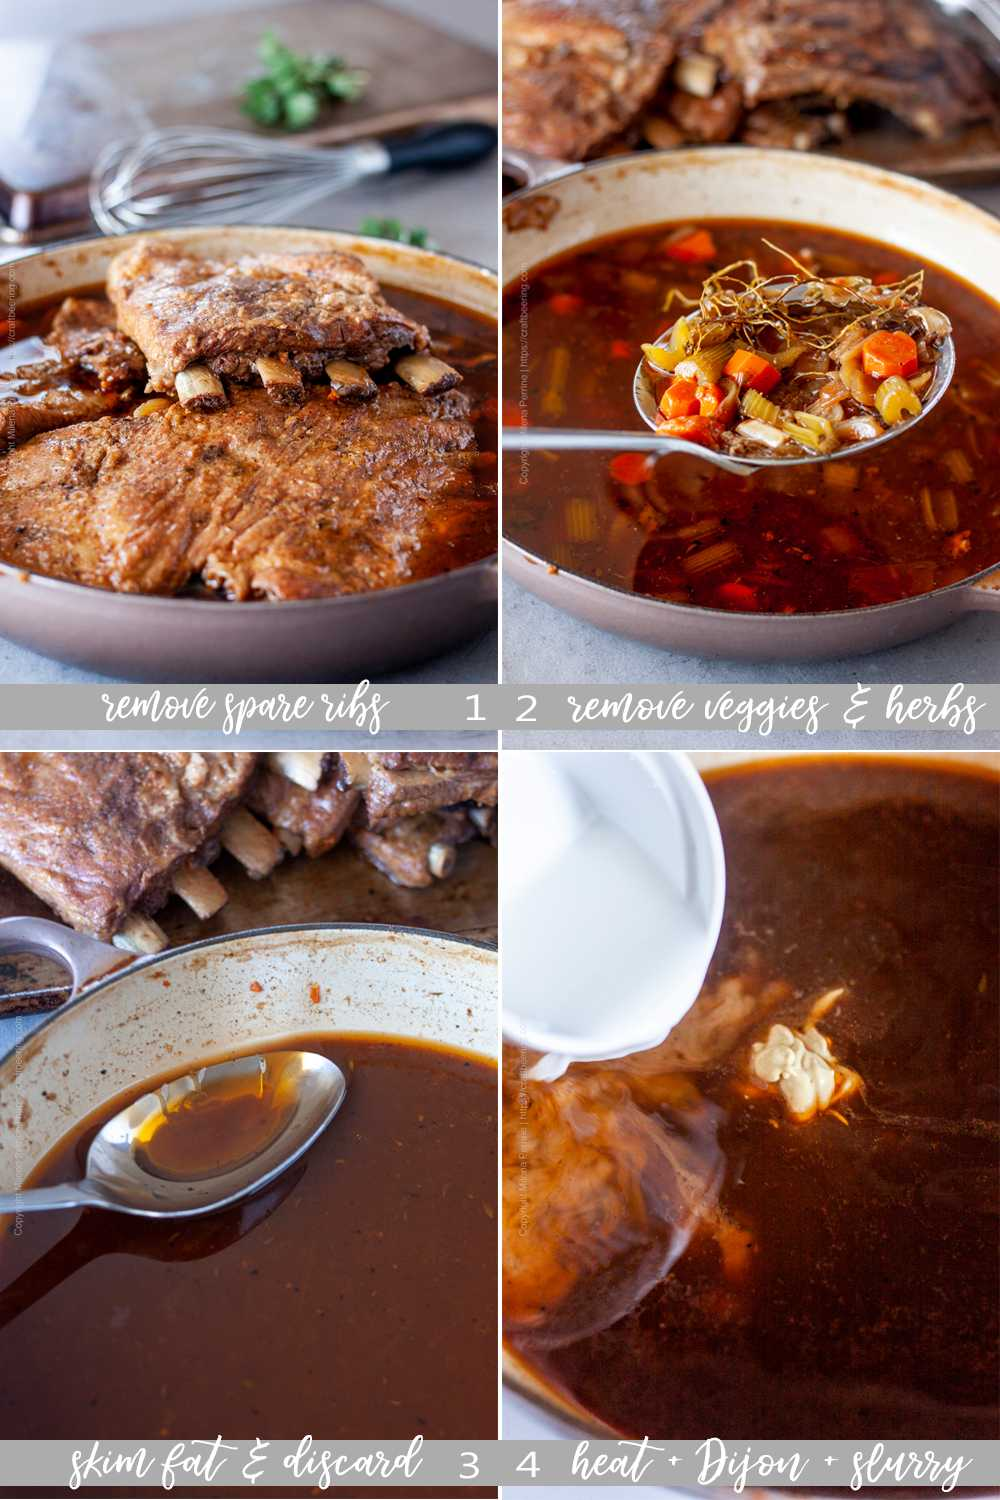 Step by step make gravy from braising liquid for spare ribs.